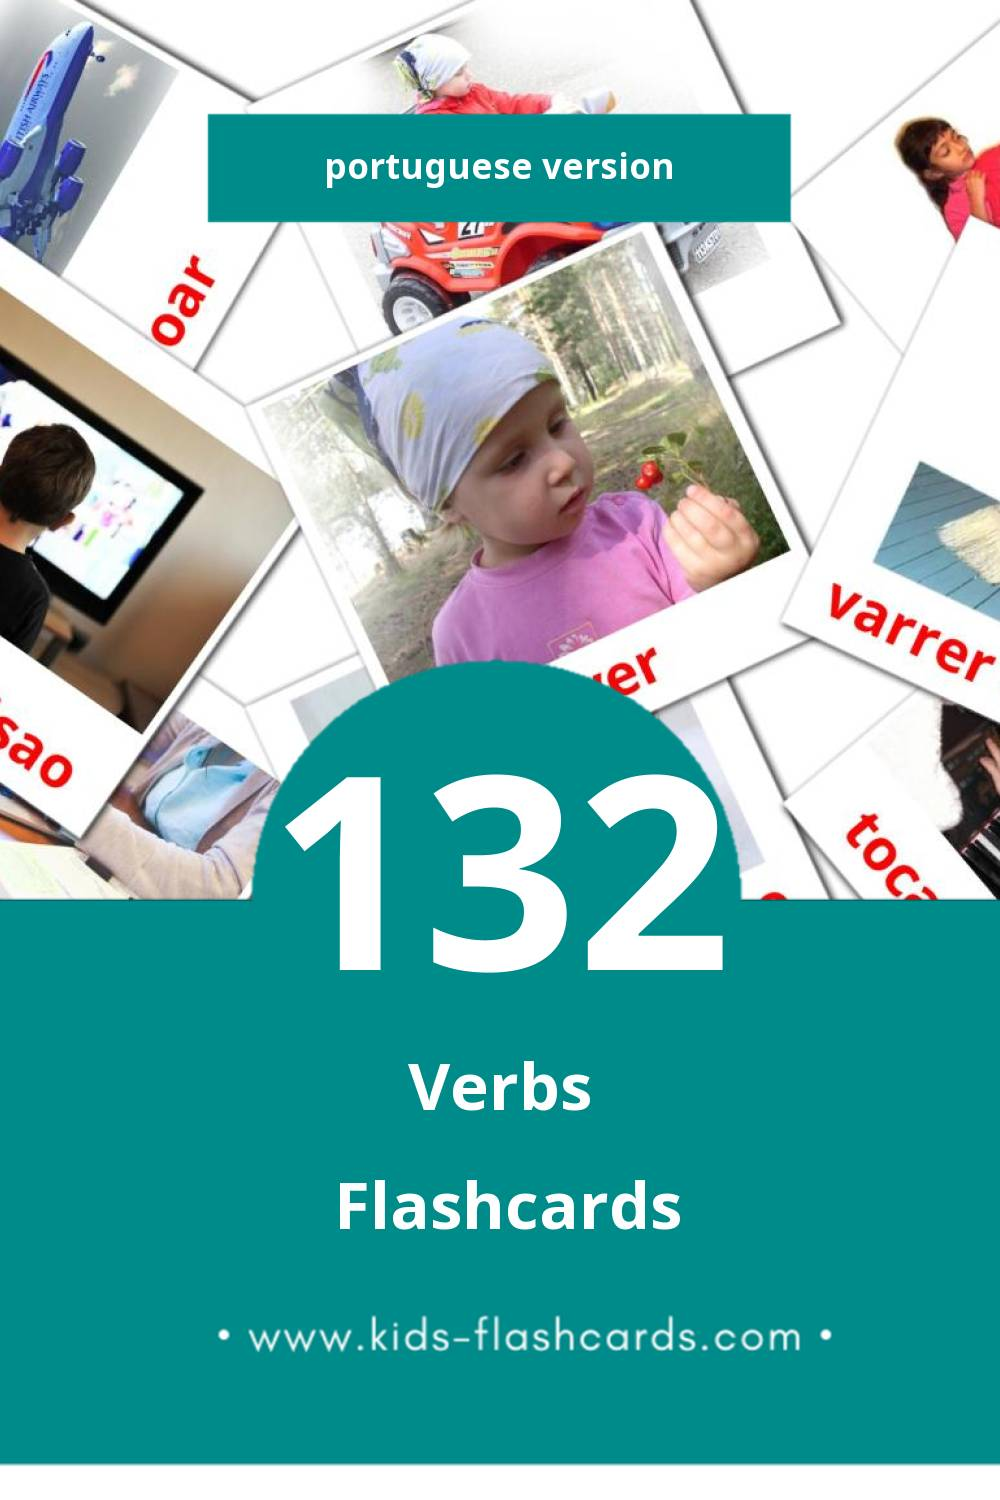 Visual VERBOS Flashcards for Toddlers (133 cards in Portuguese)